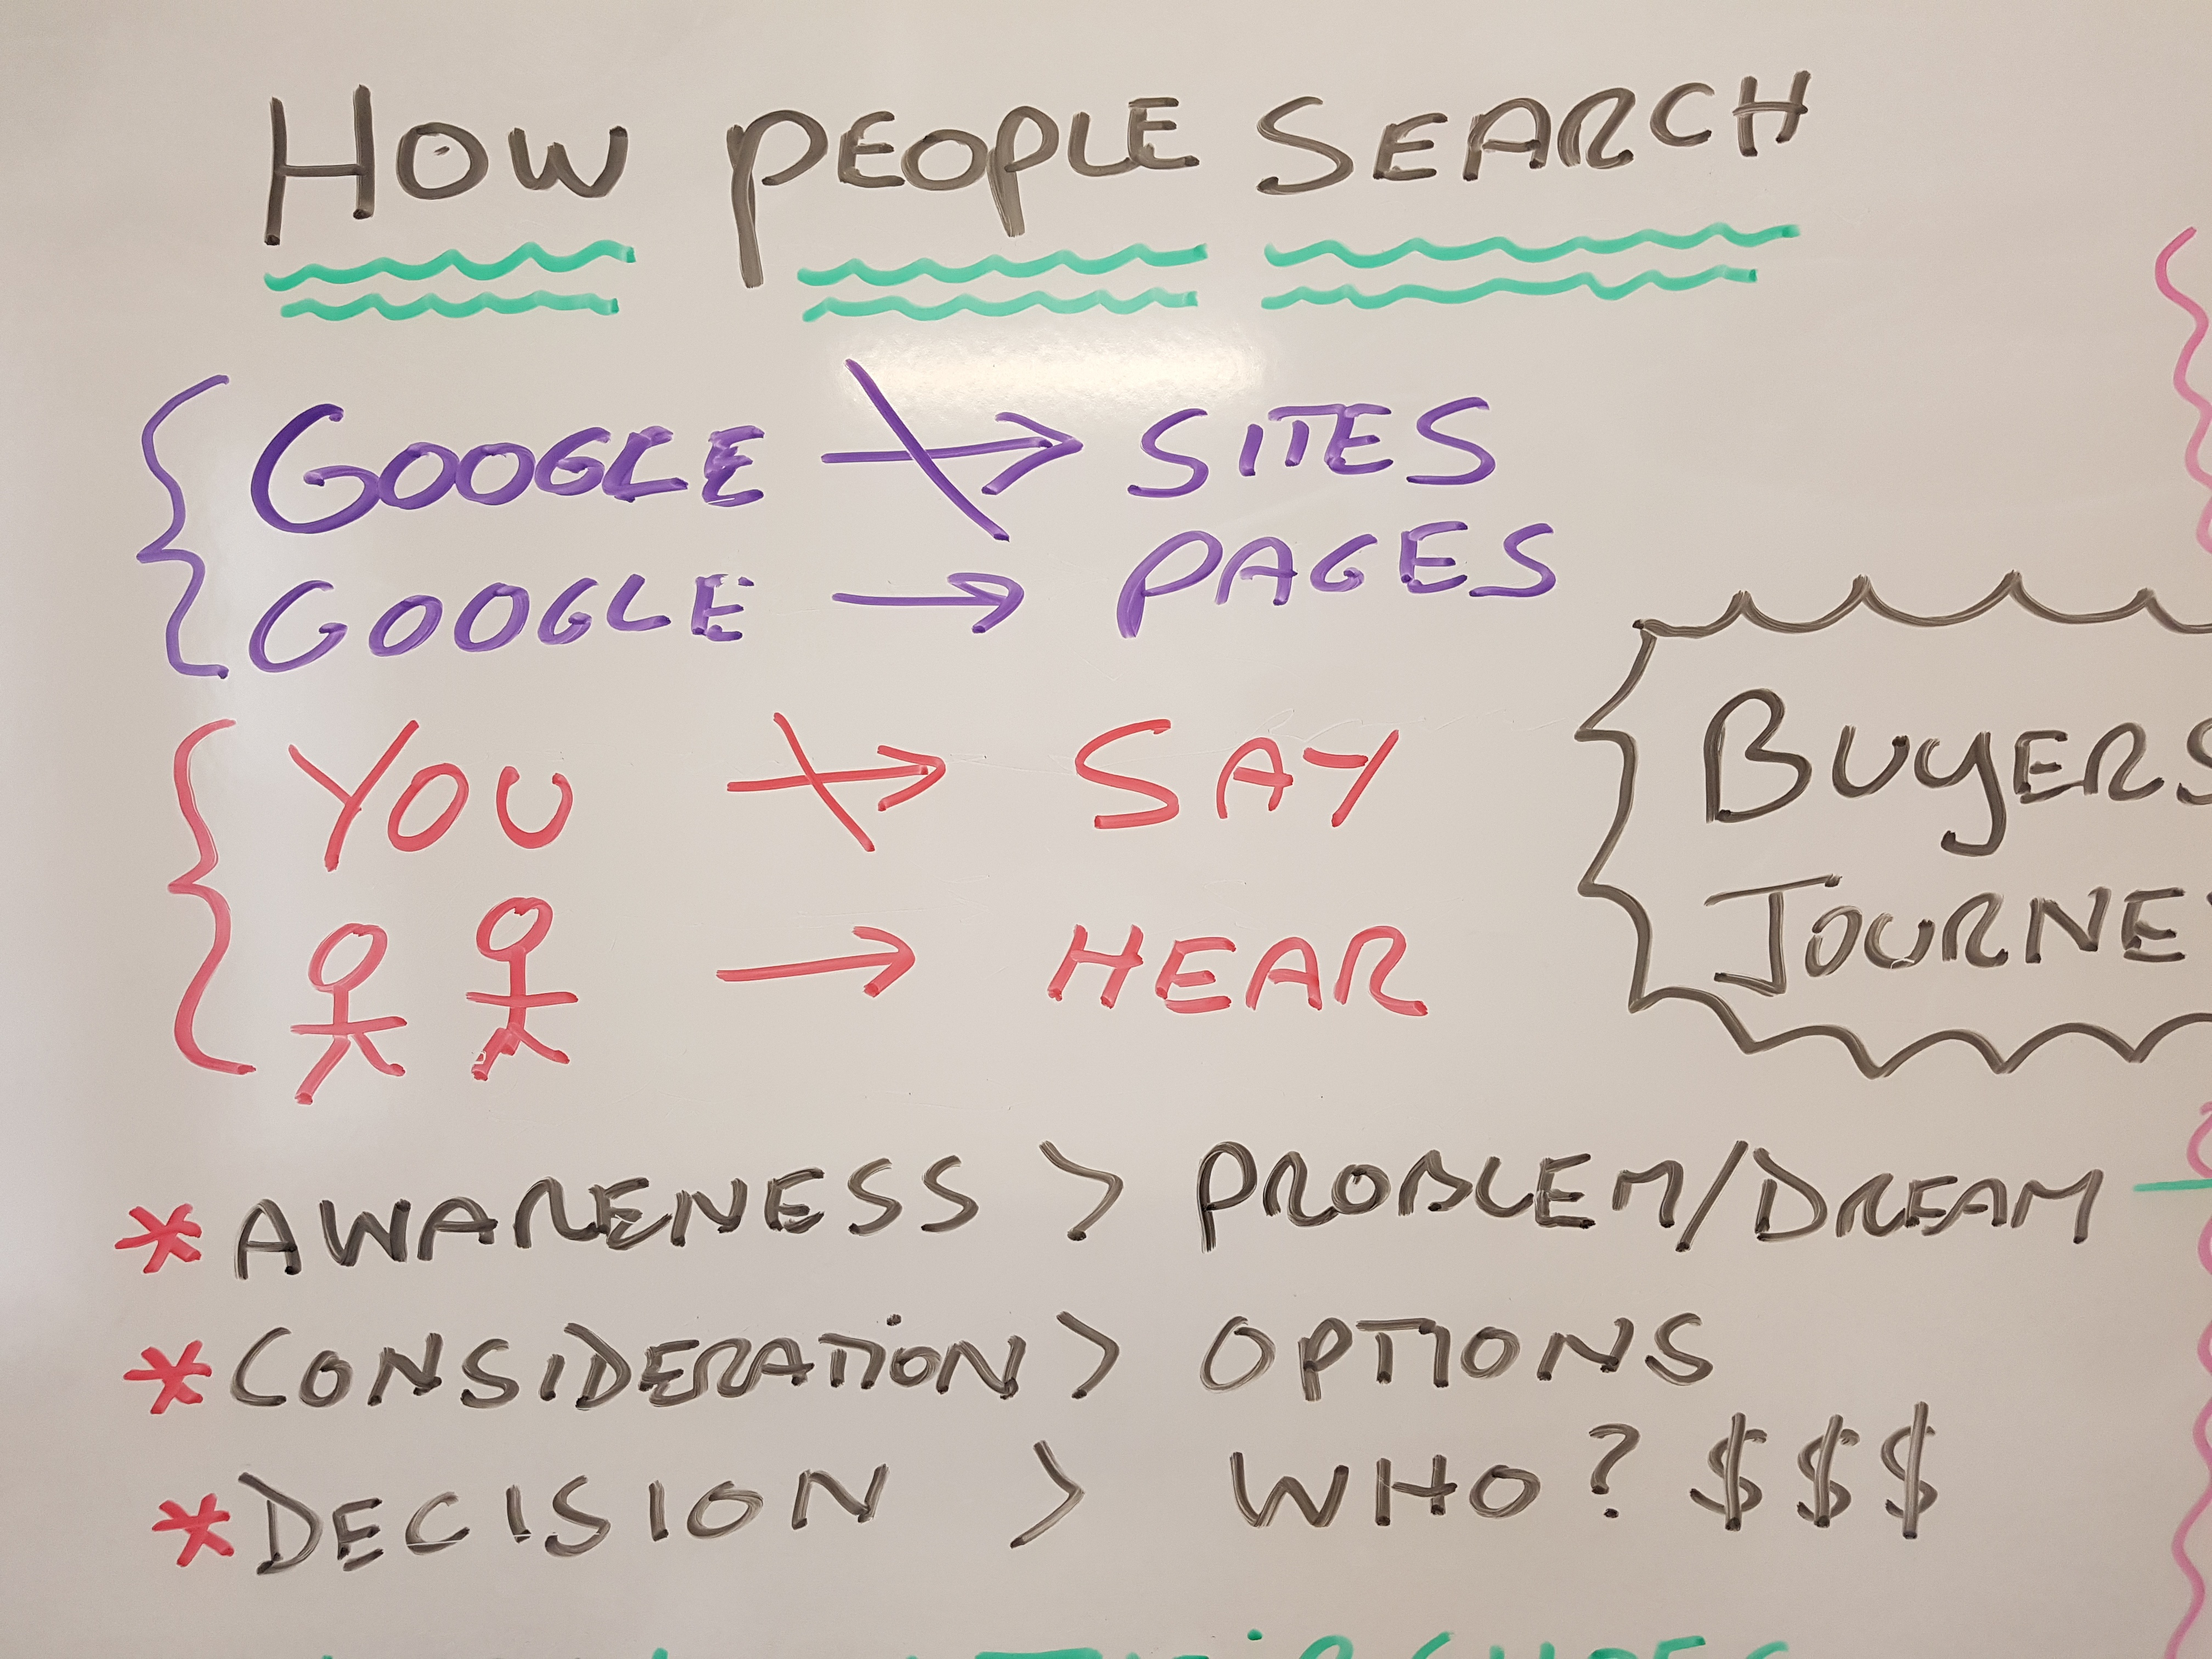 [Video] SEO — How to make sure your website content attracts more people